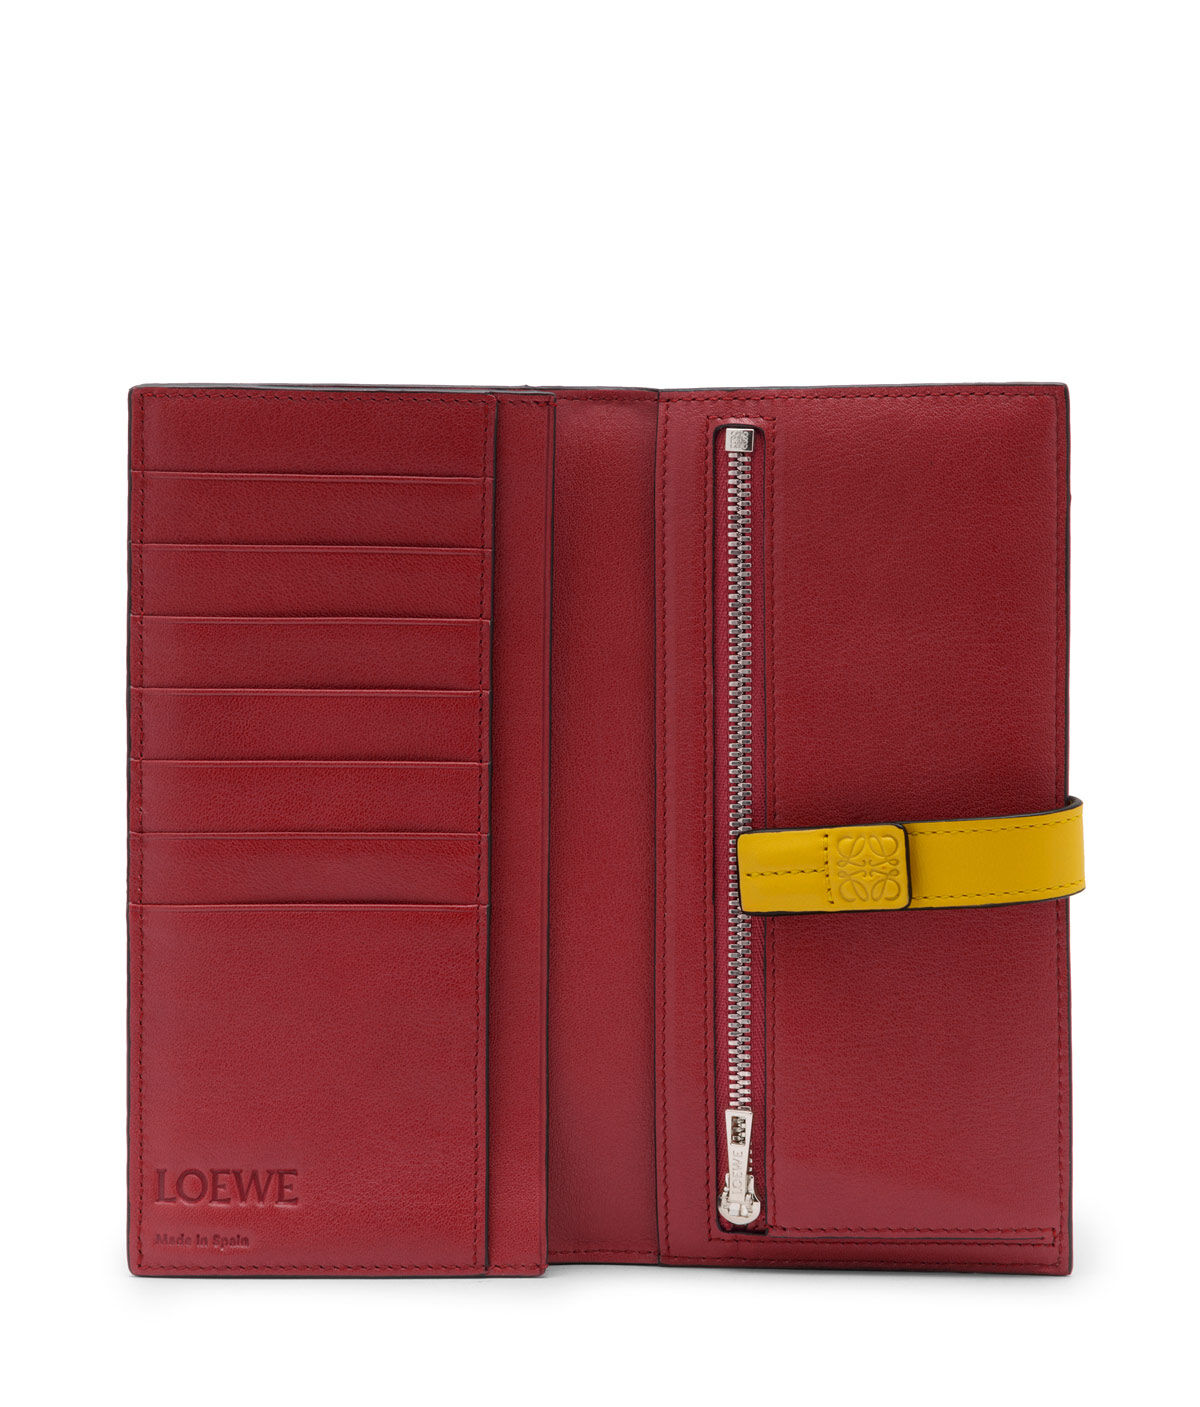 LOEWE Billetero Largo Vertical Marron Hoja/Amarillo all